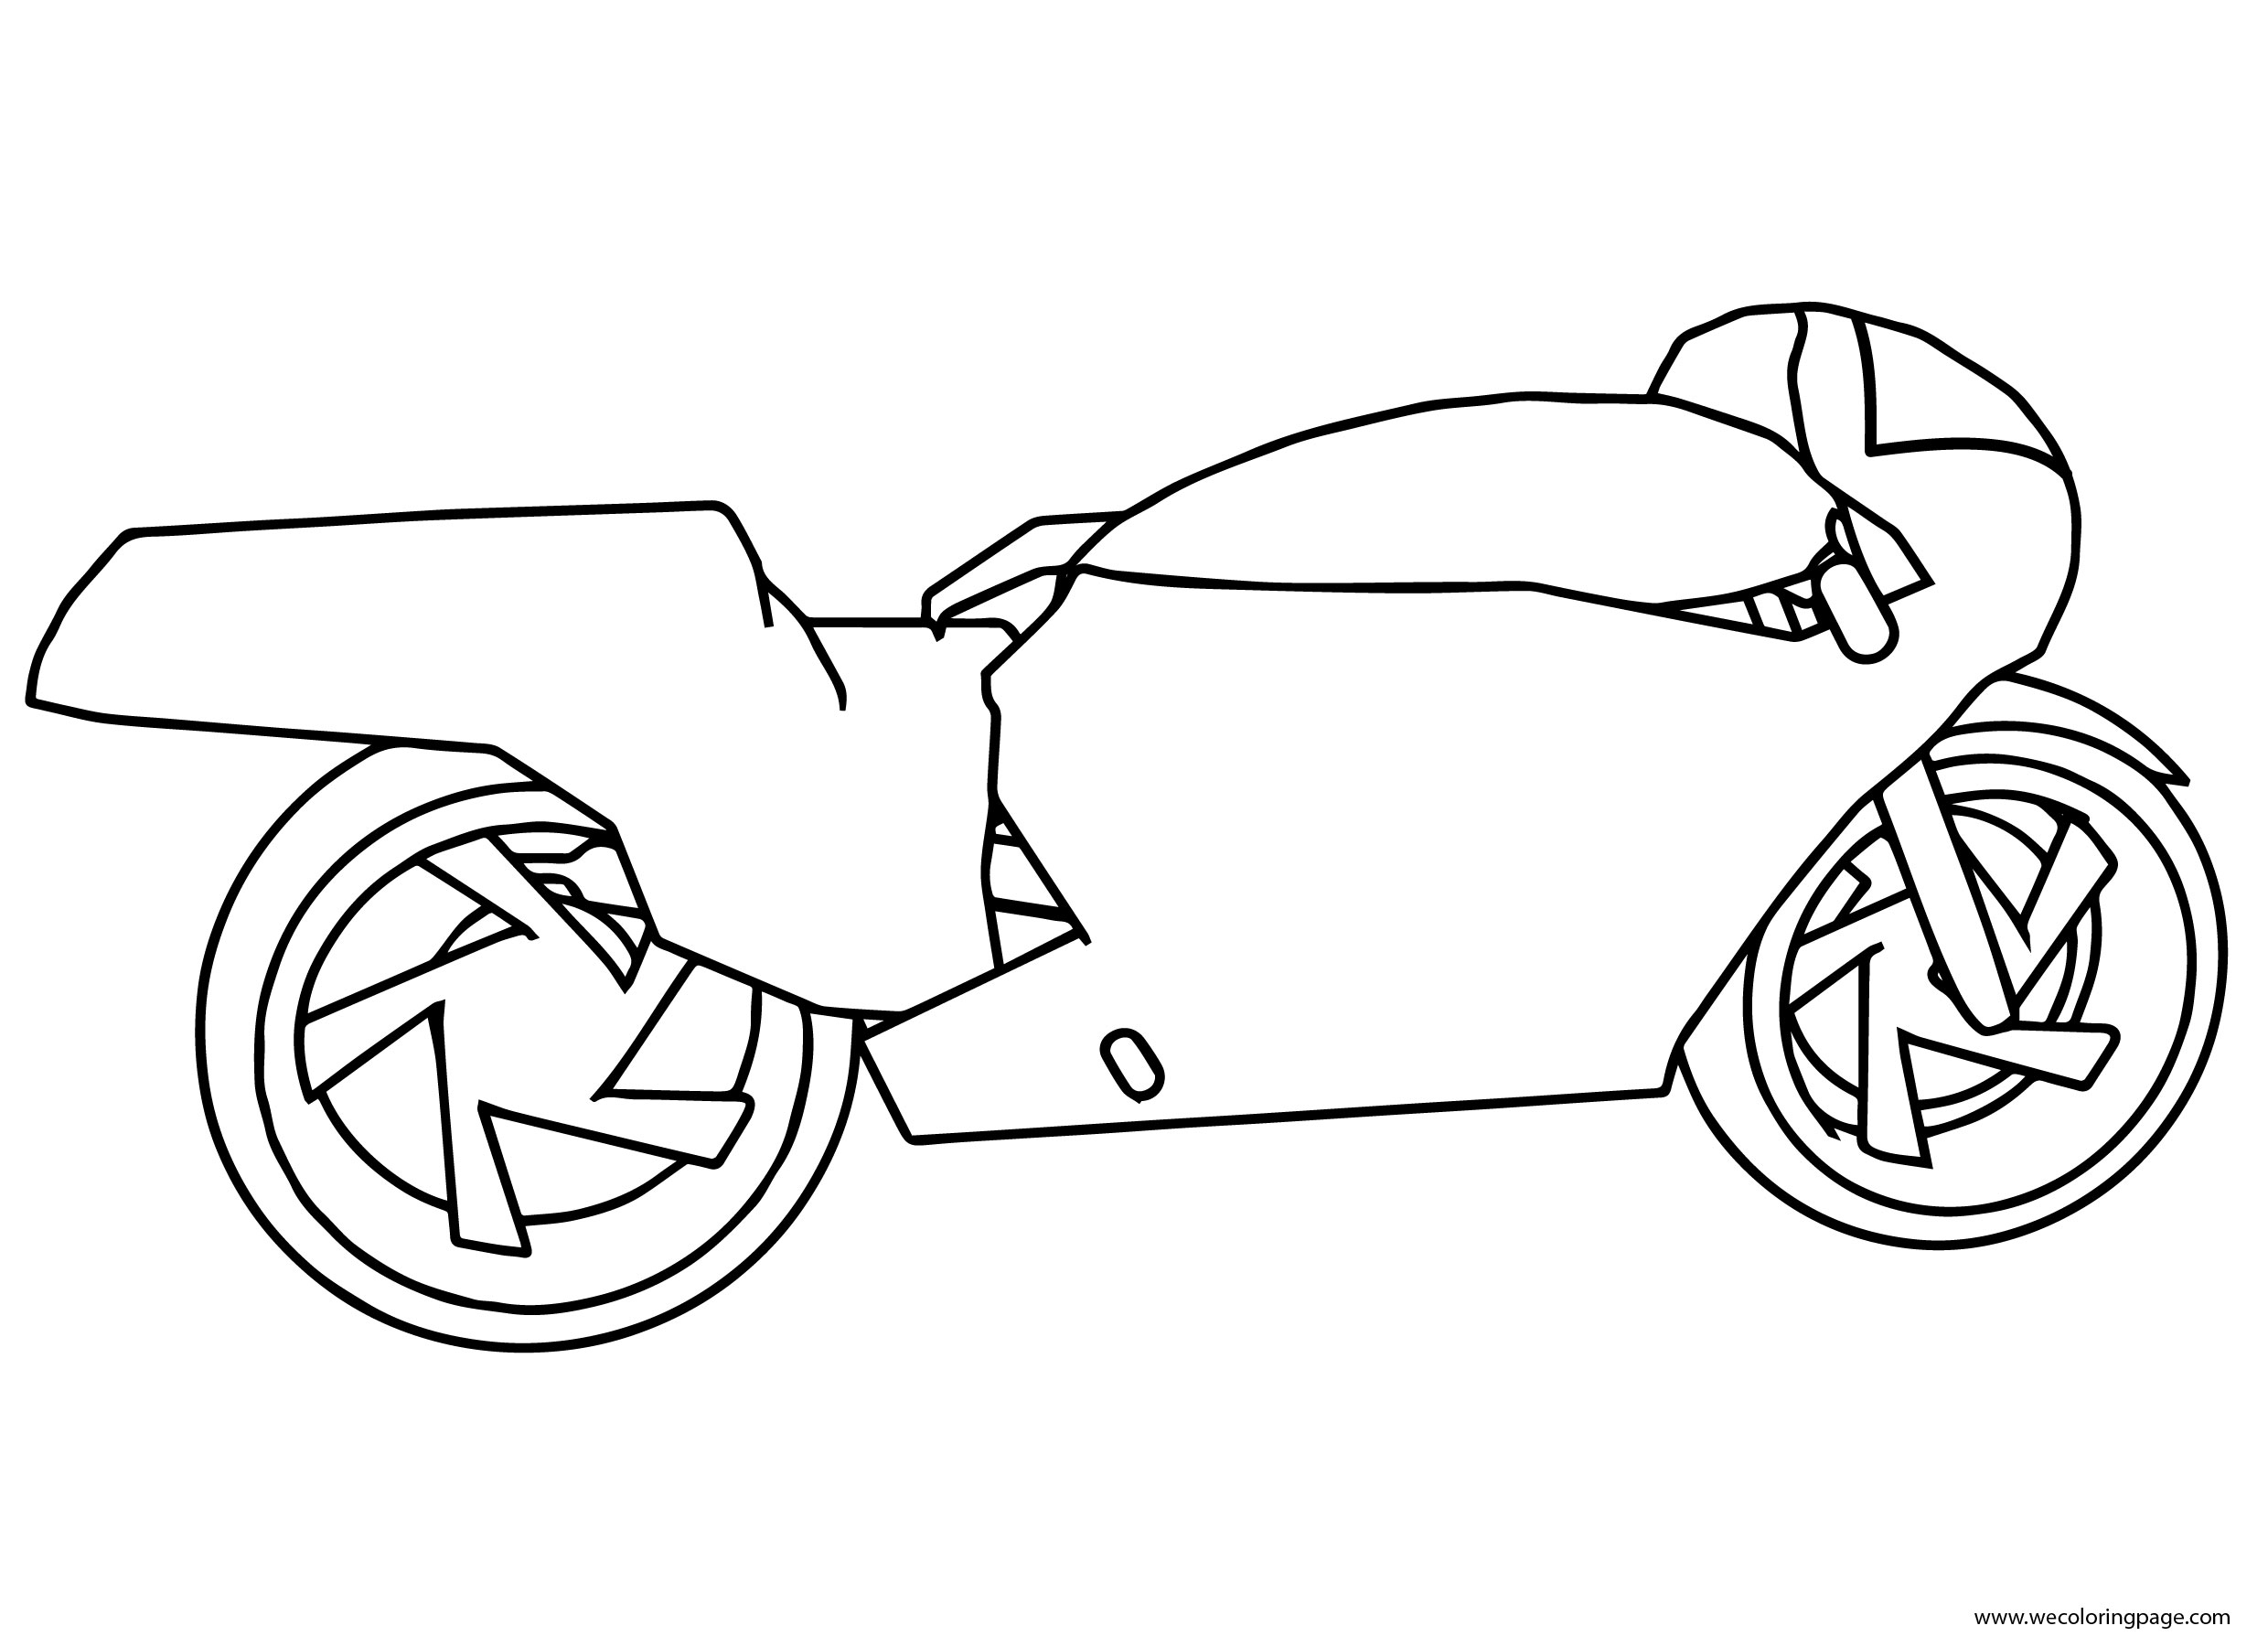 Basic Motorcycle Coloring Page